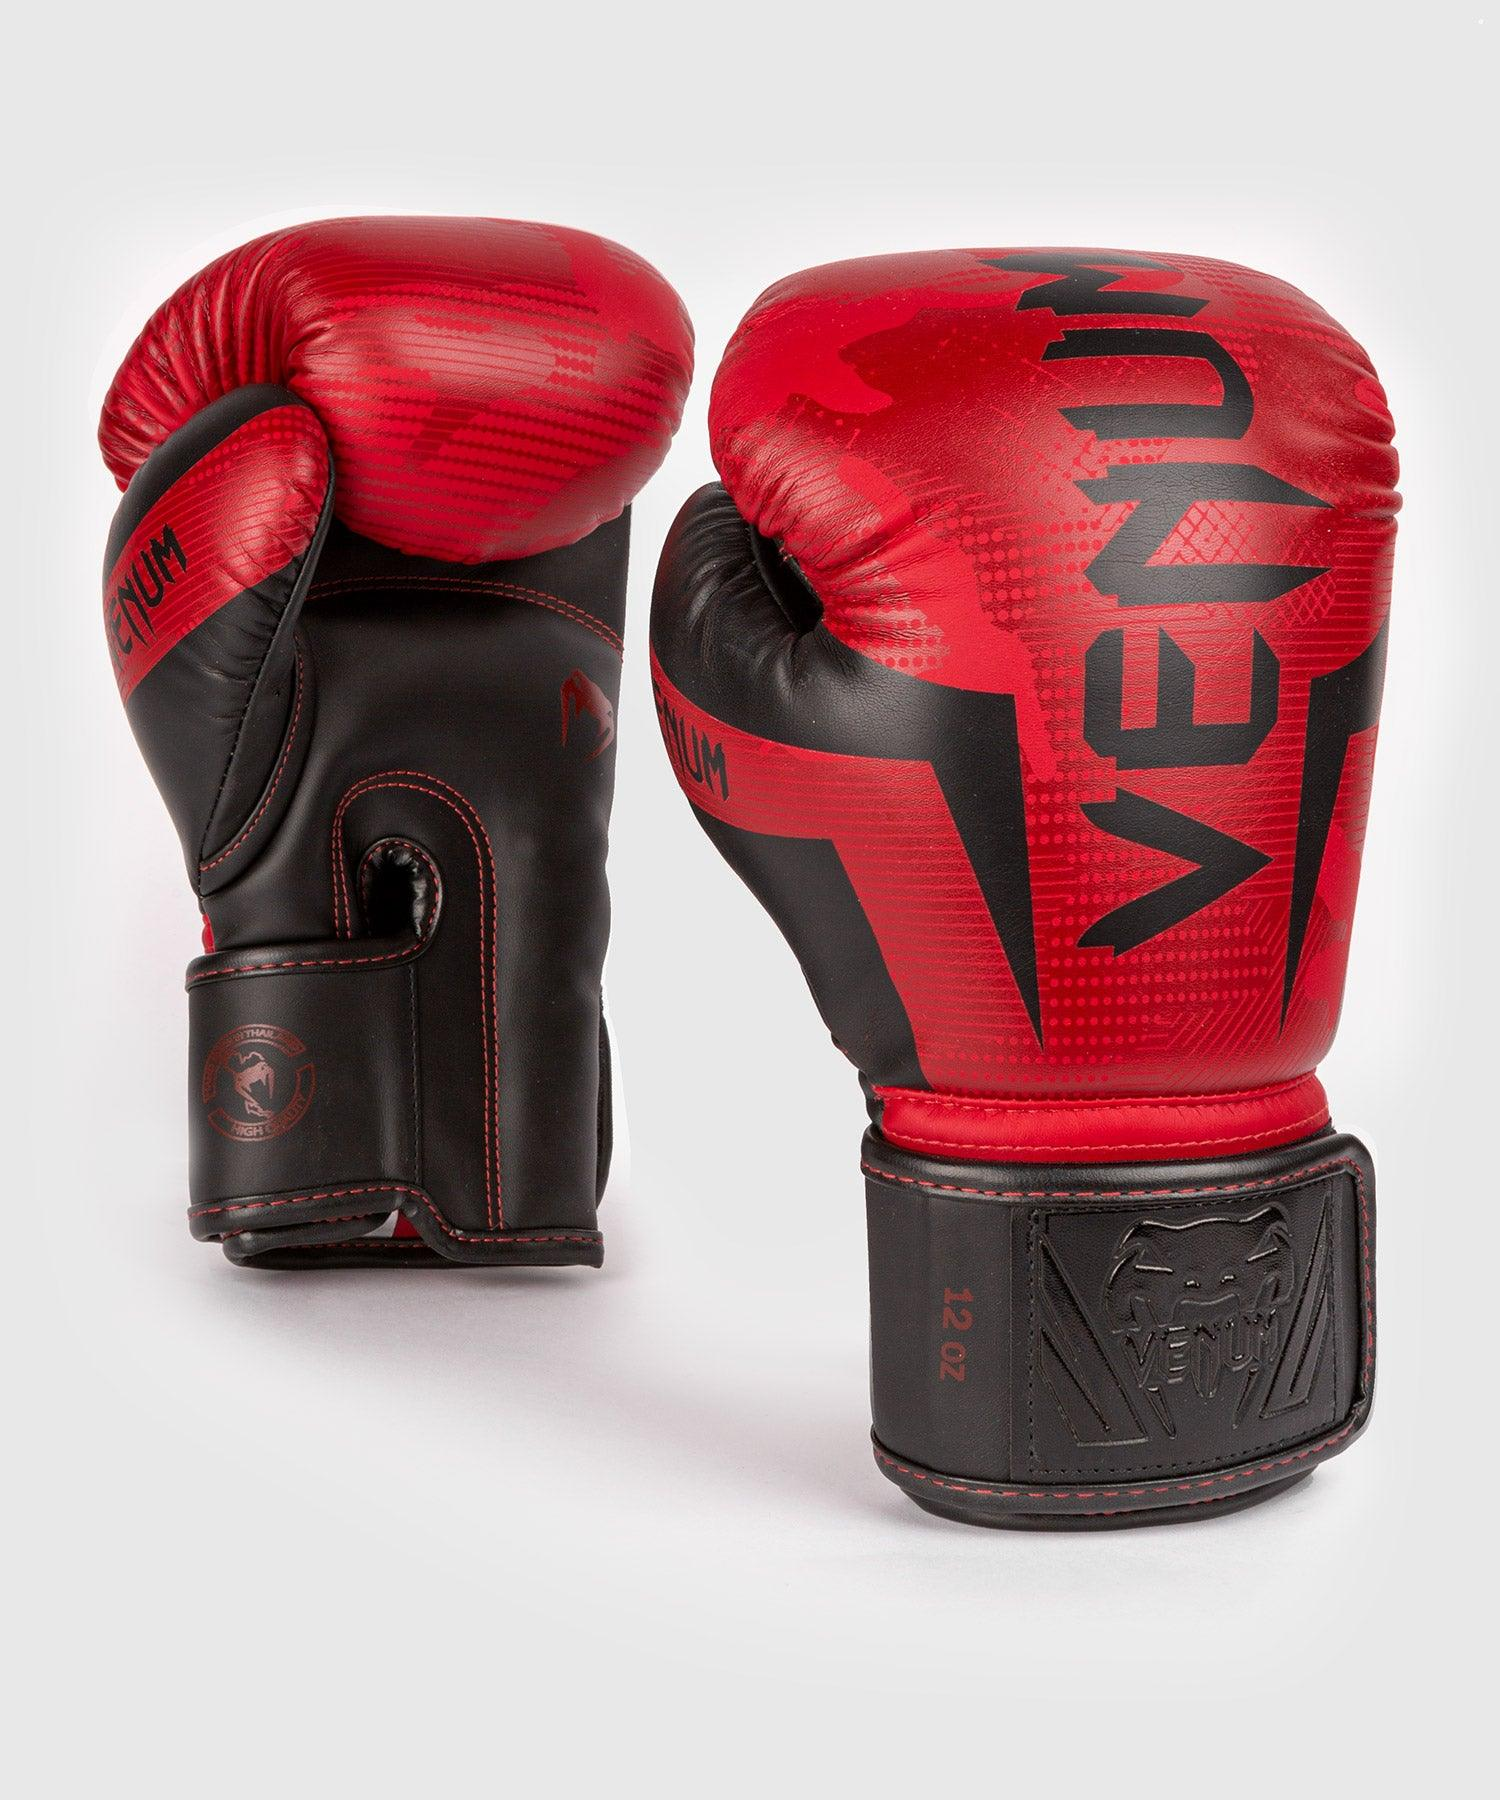 Venum Elite Boxing Gloves - Red Camo picture 1